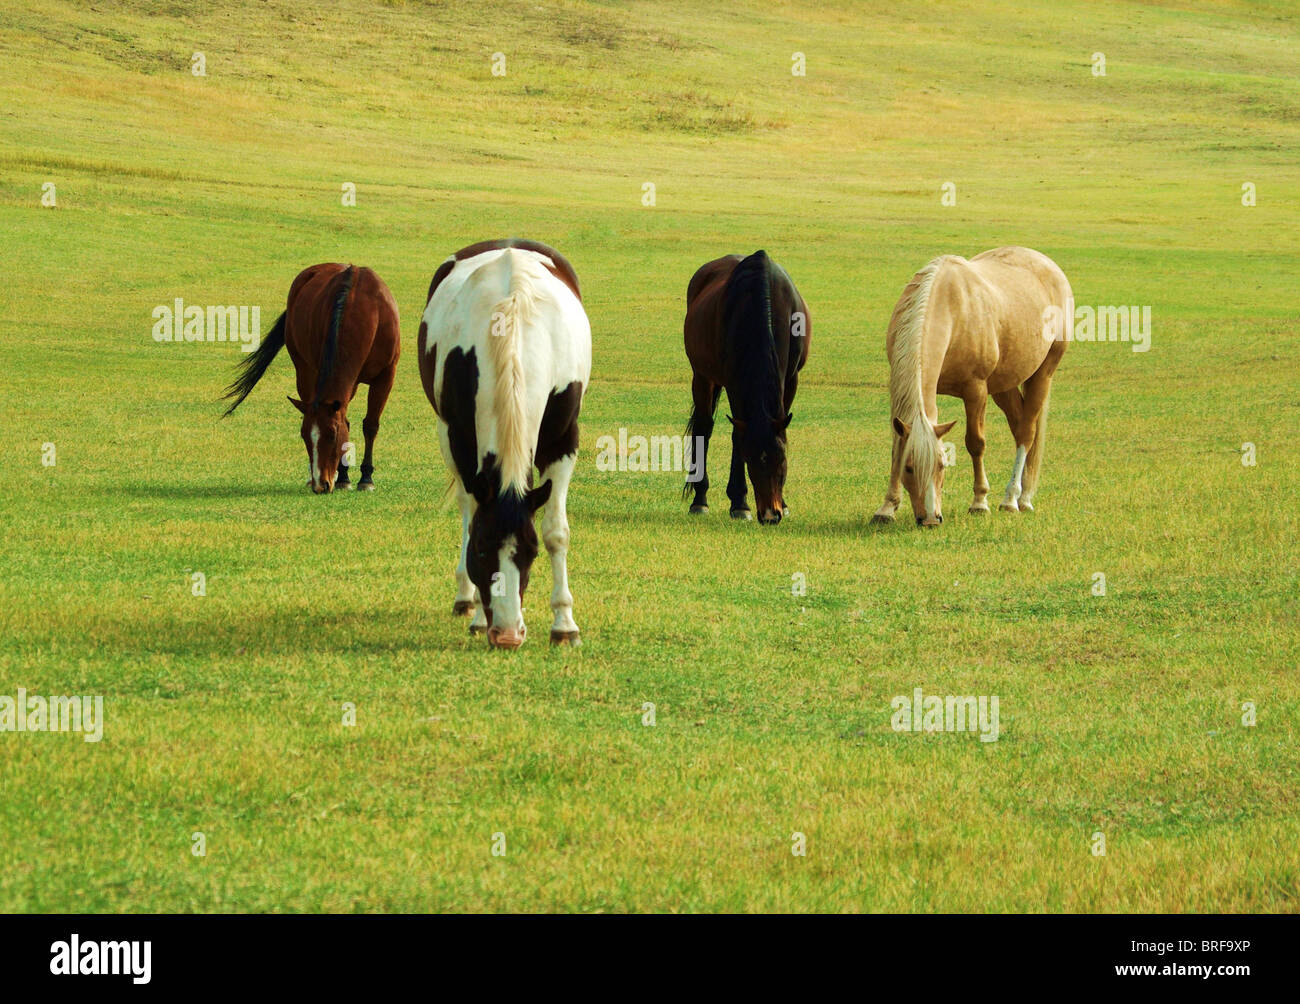 Four Horses grazing in green pasture on sunny afternoon. Stock Photo